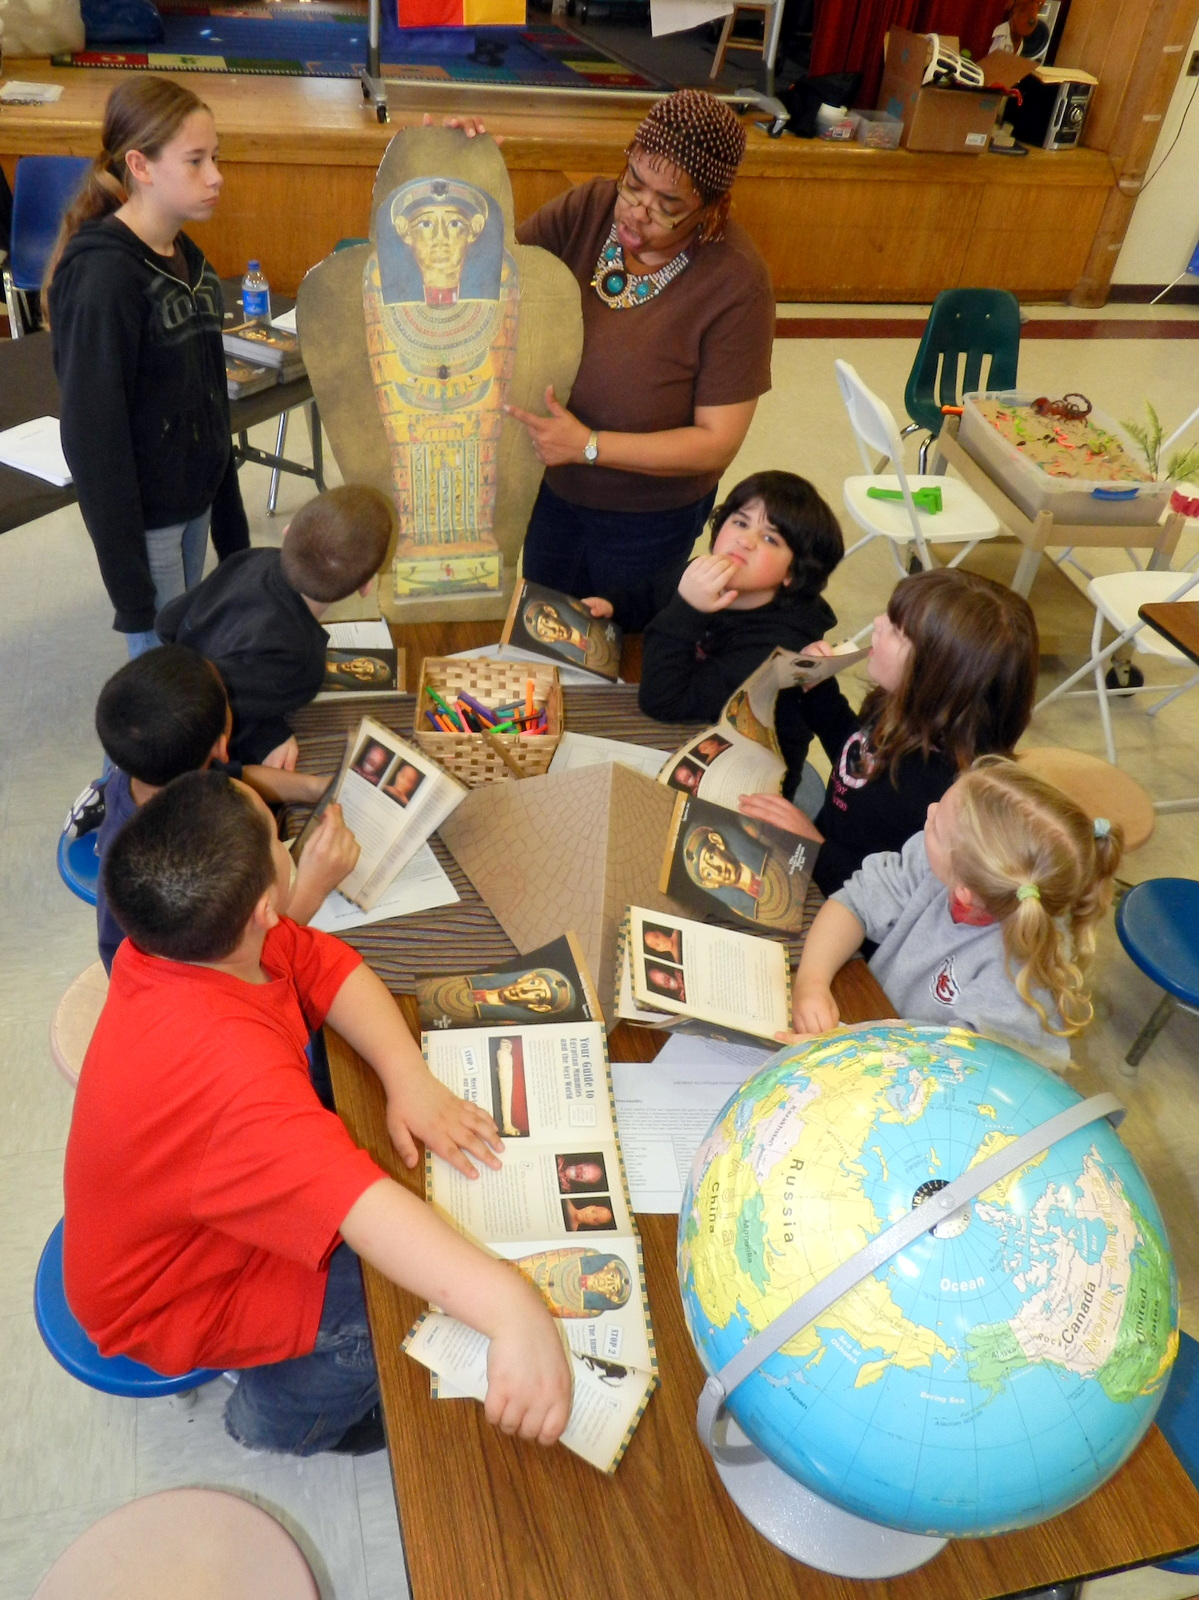 Independence students learn about Egyptian history at Culture Day held at Korte Elementary.